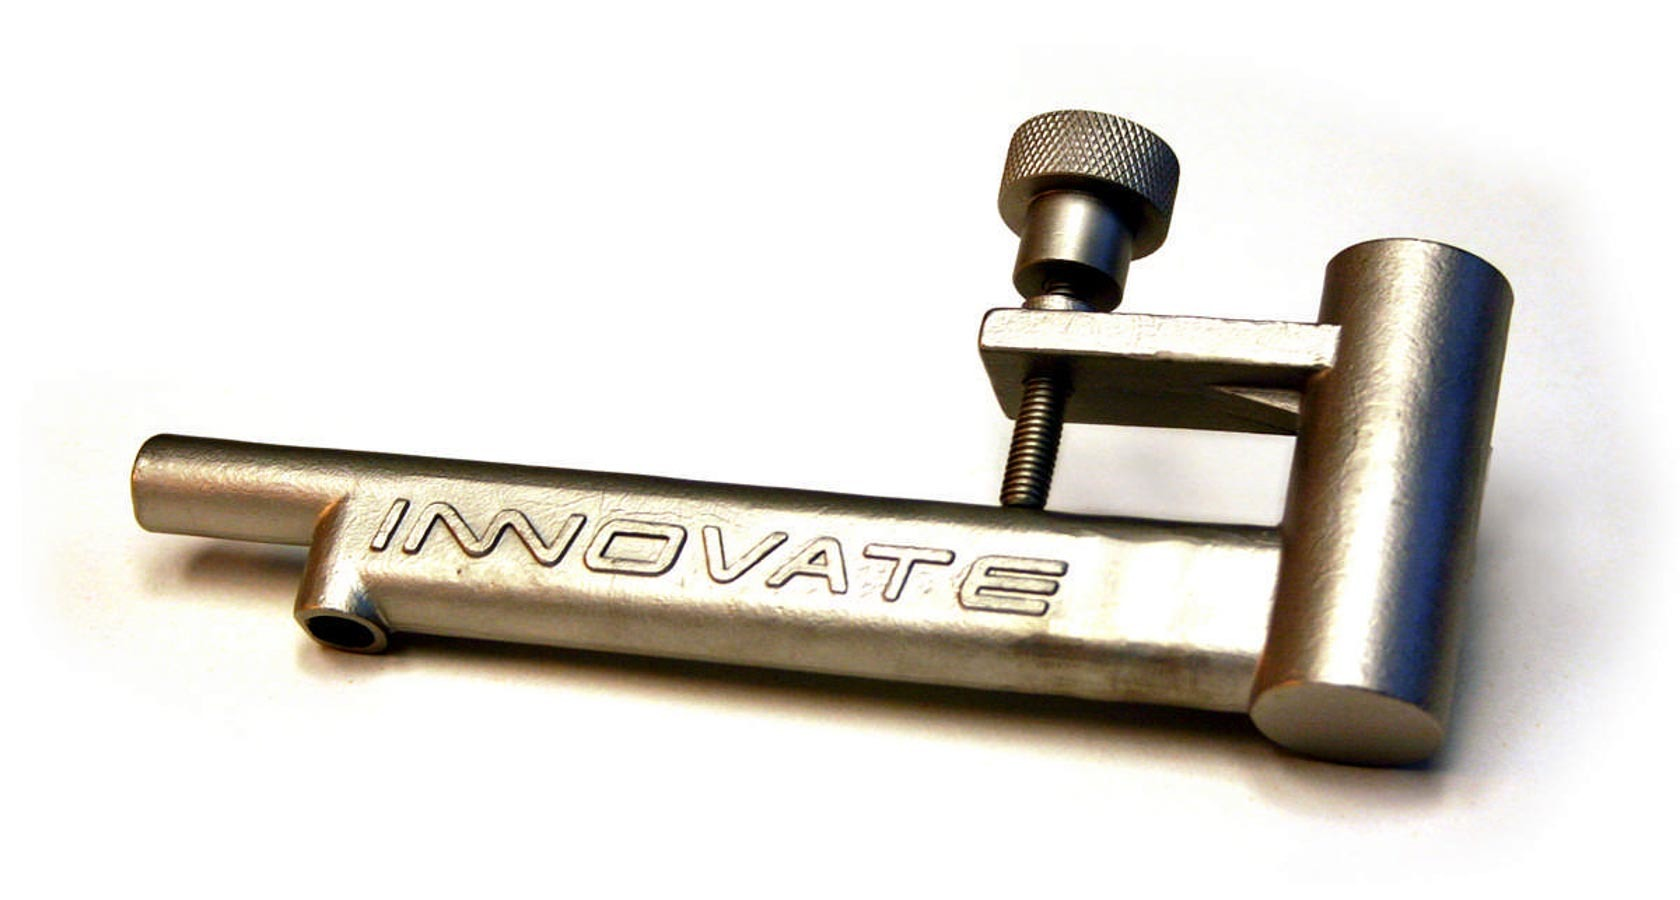 Innovate Motorsports 3728 Oxygen Sensor Exhaust Pipe Clamp, Stainless, Natural, Universal, Each